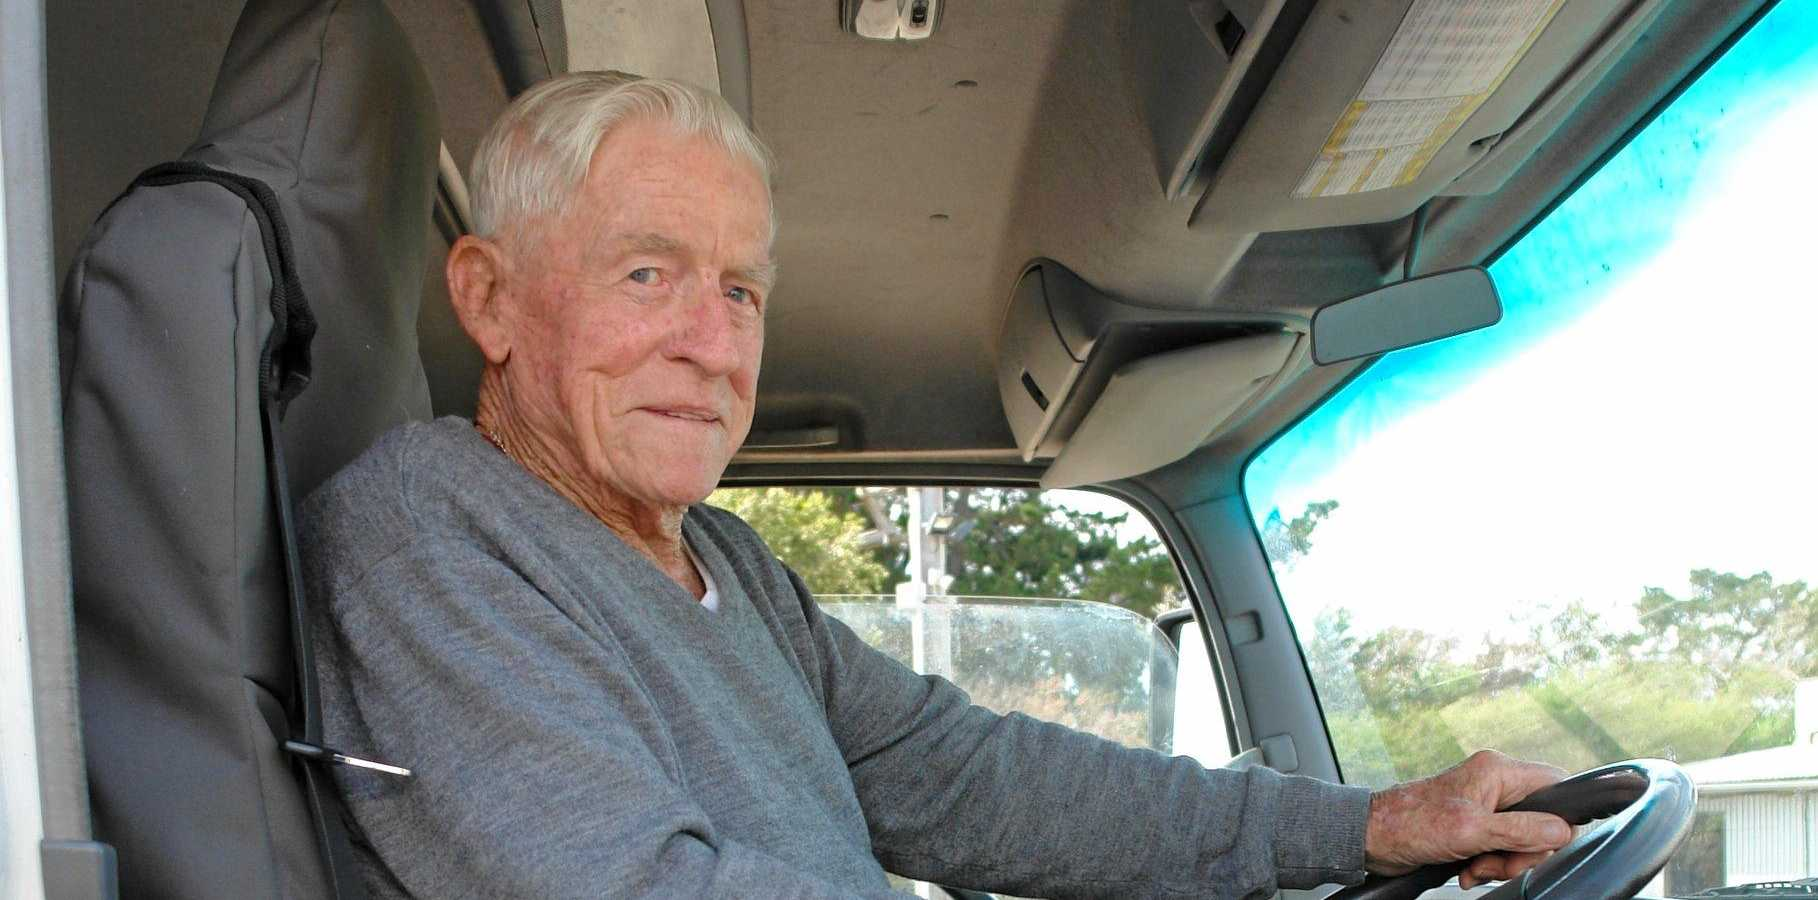 WHAT A LEGEND: Peter Ward, 95, has hardly missed a day's work in more than 20 years driving his trusty Isuzu.